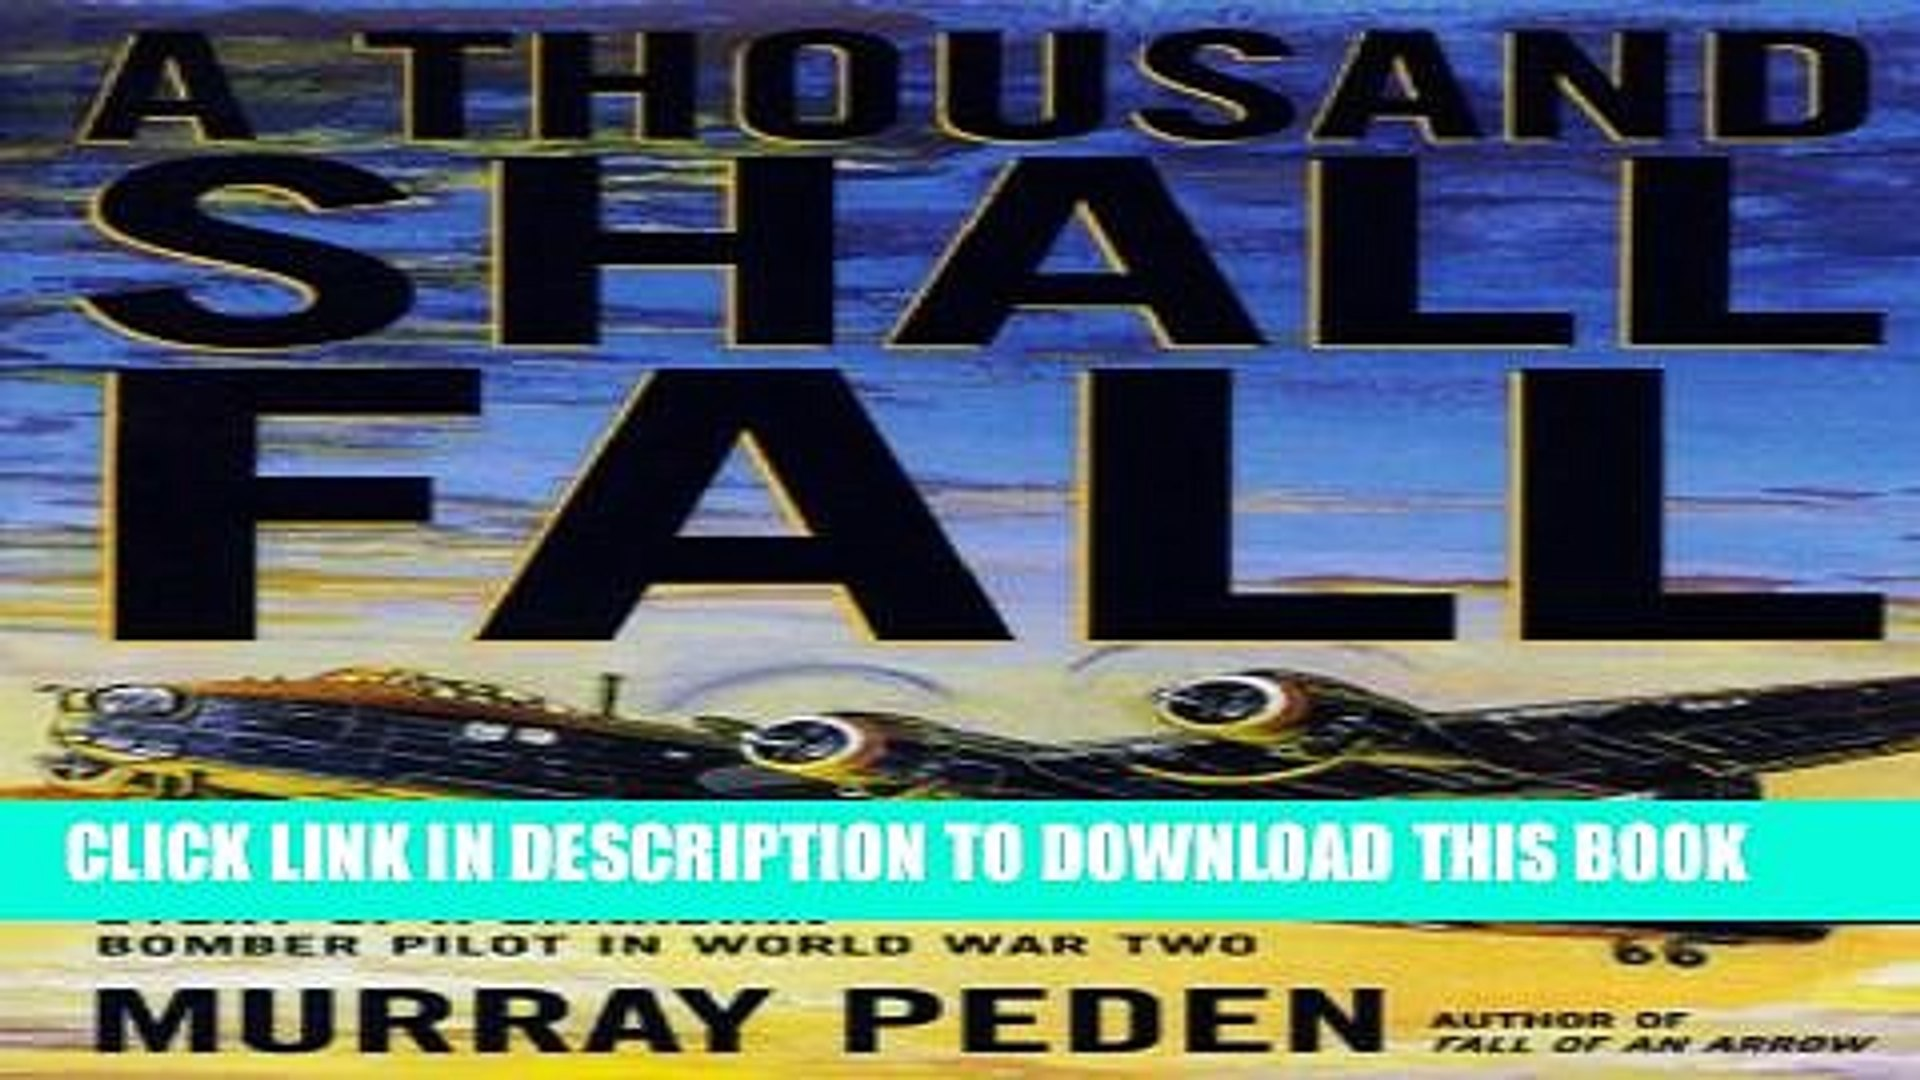 New Book A Thousand Shall Fall: The True Story of a Canadian Bomber Pilot in World War Two